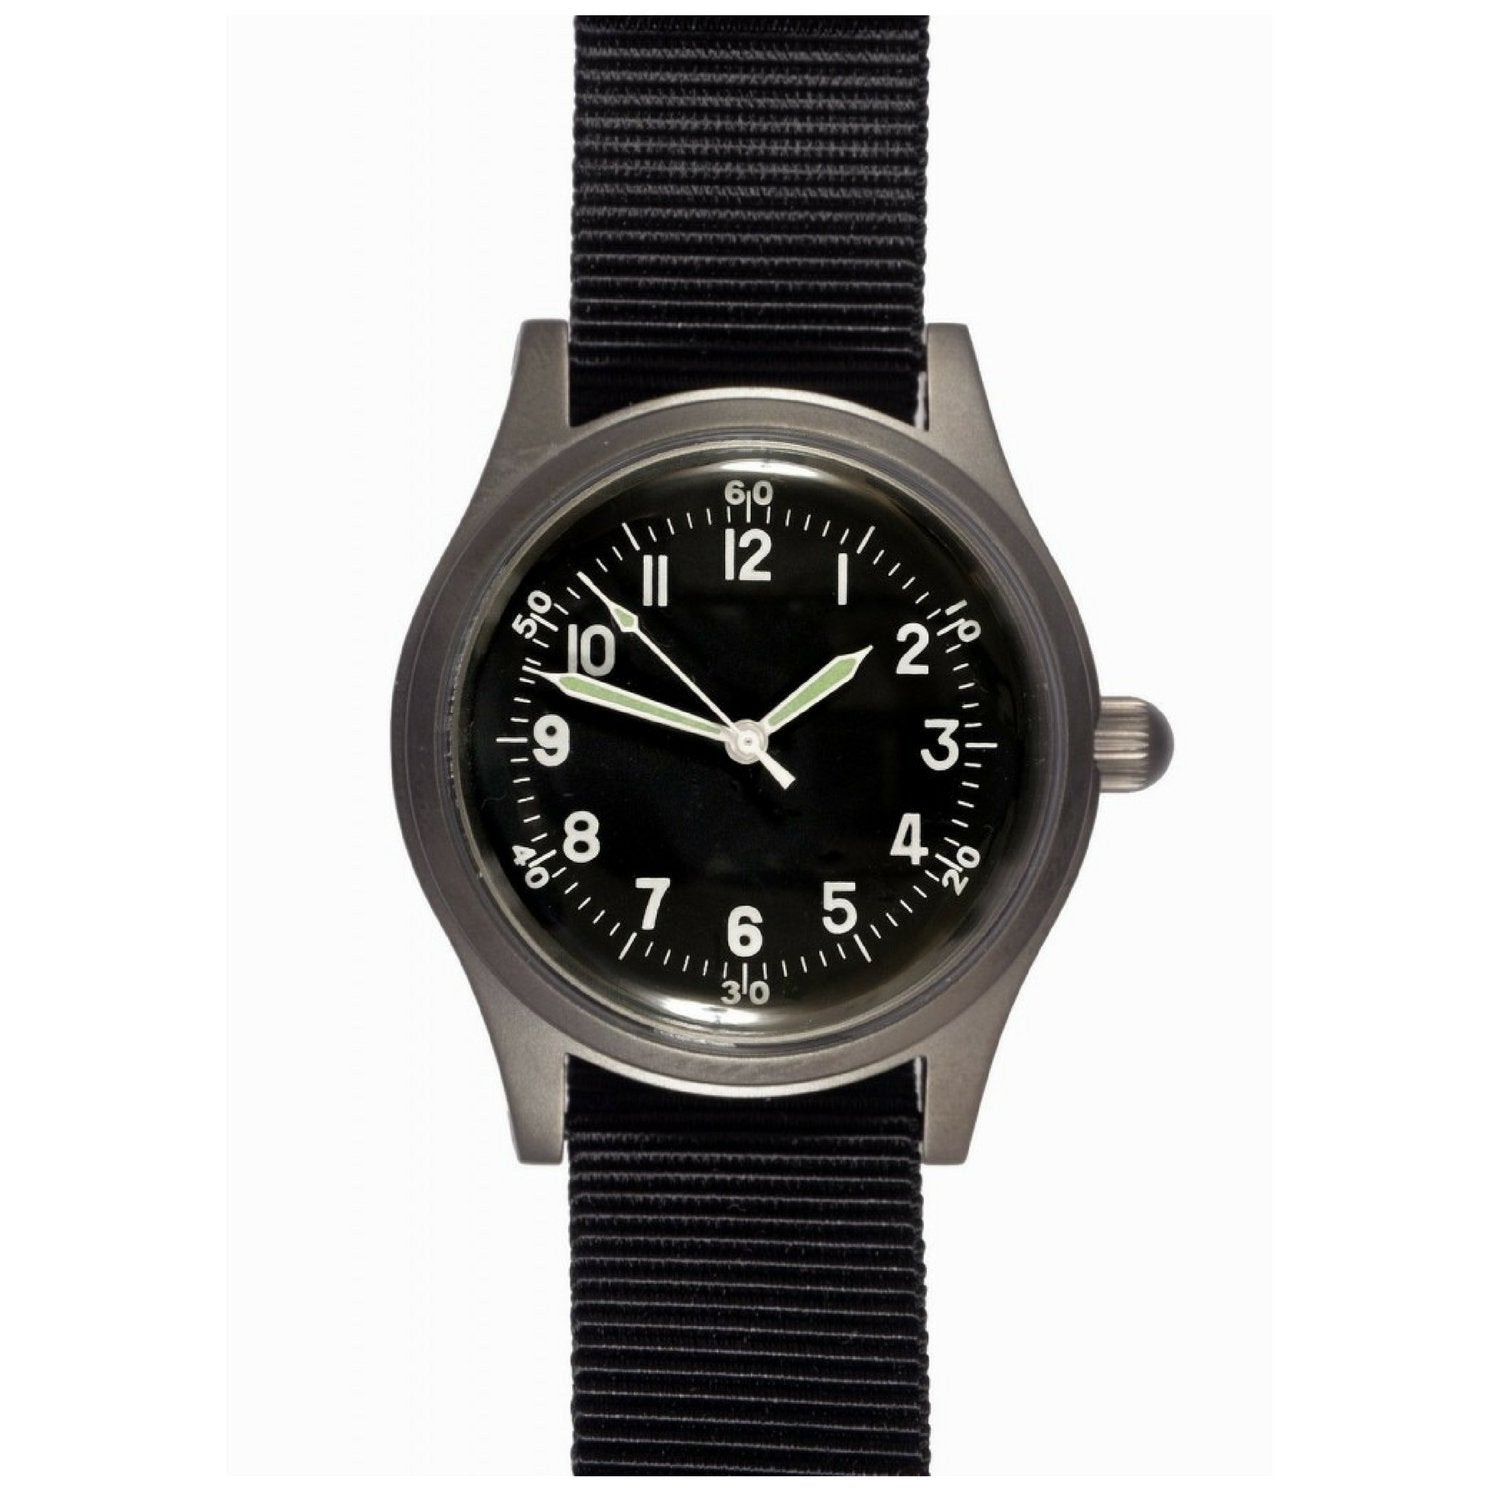 A-11 1940s WWII Pattern Military Watch (Automatic or Handwound)